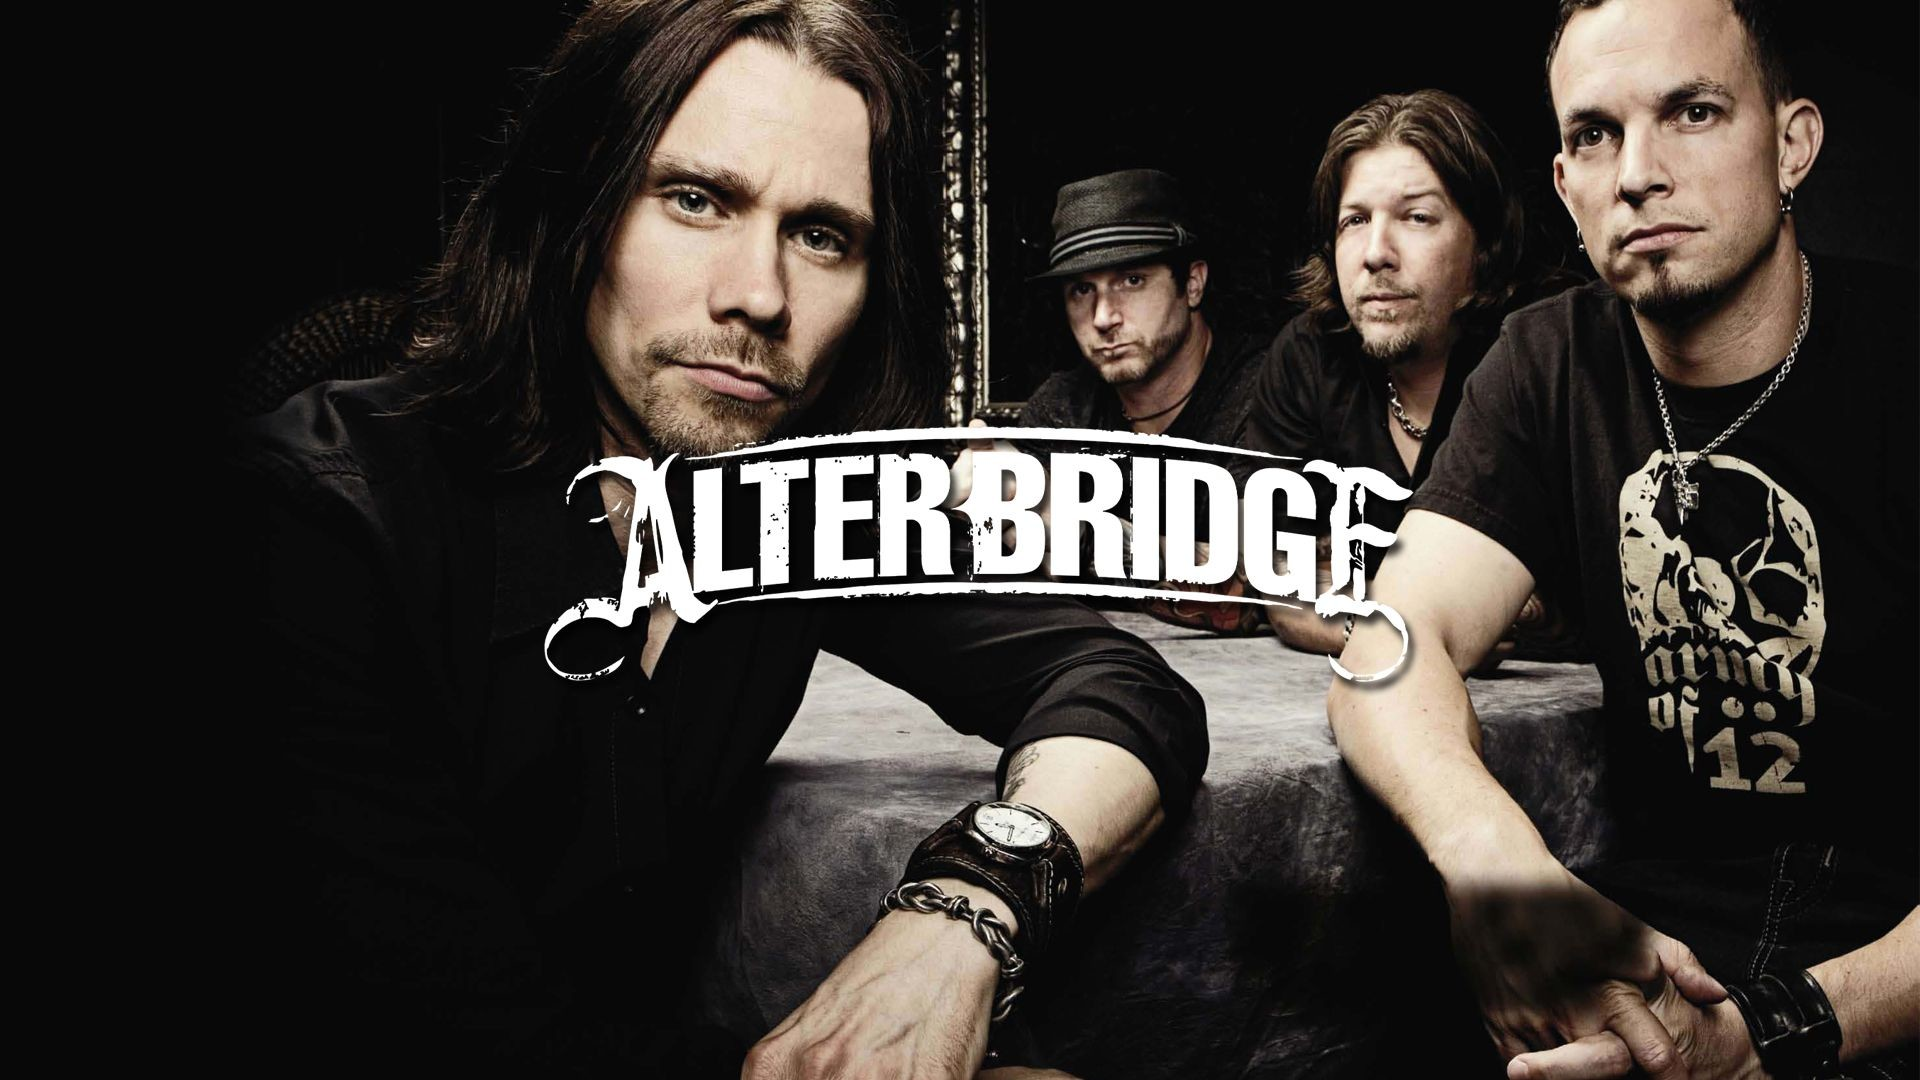 Alter Bridge Wallpaper ①